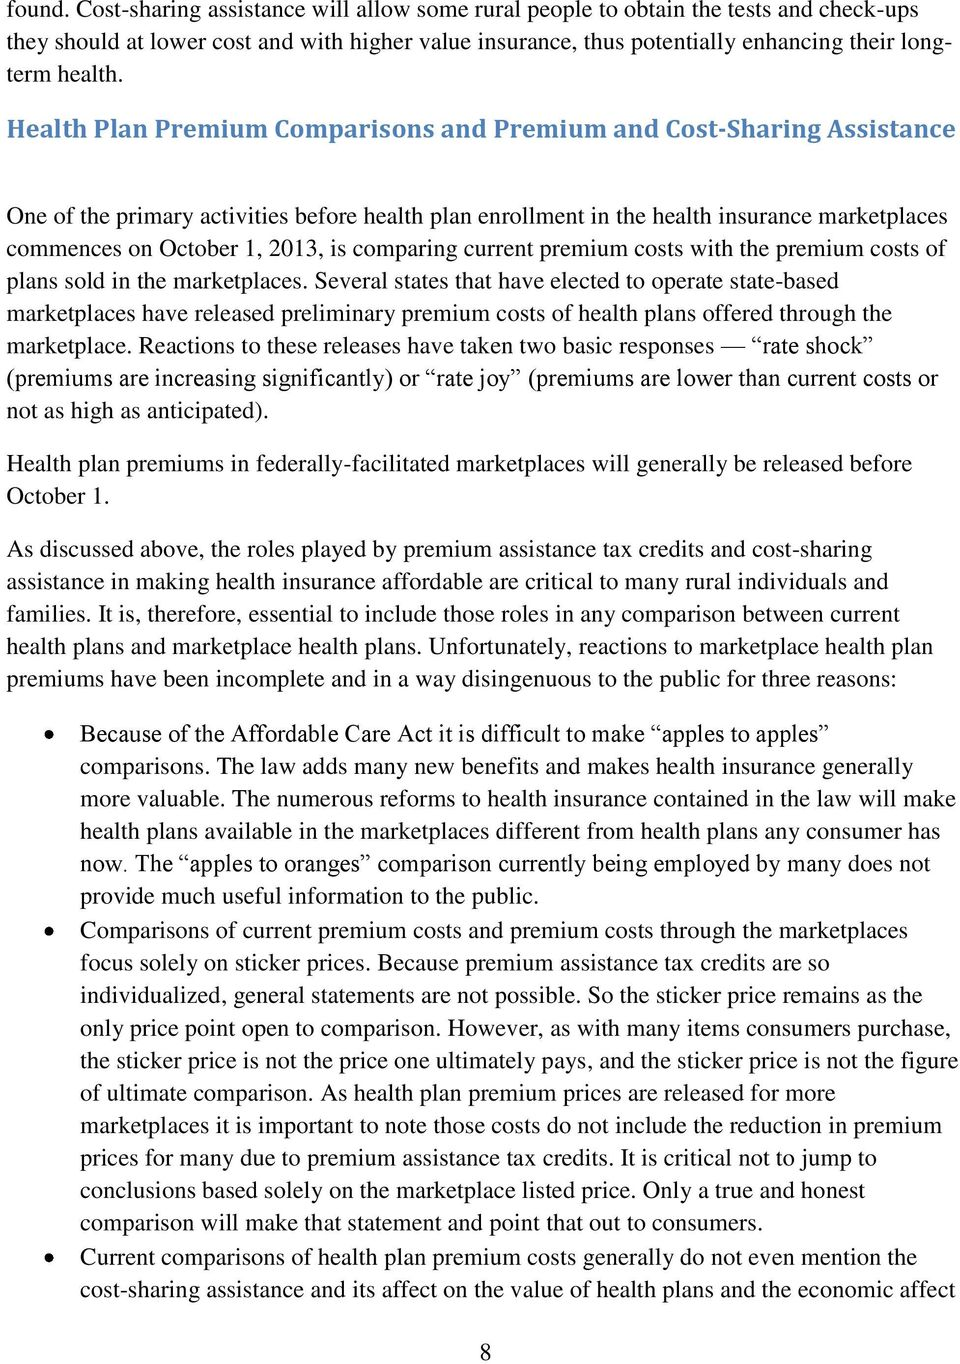 Health Plan Premium Comparisons and Premium and Cost-Sharing Assistance One of the primary activities before health plan enrollment in the health insurance marketplaces commences on October 1, 2013,